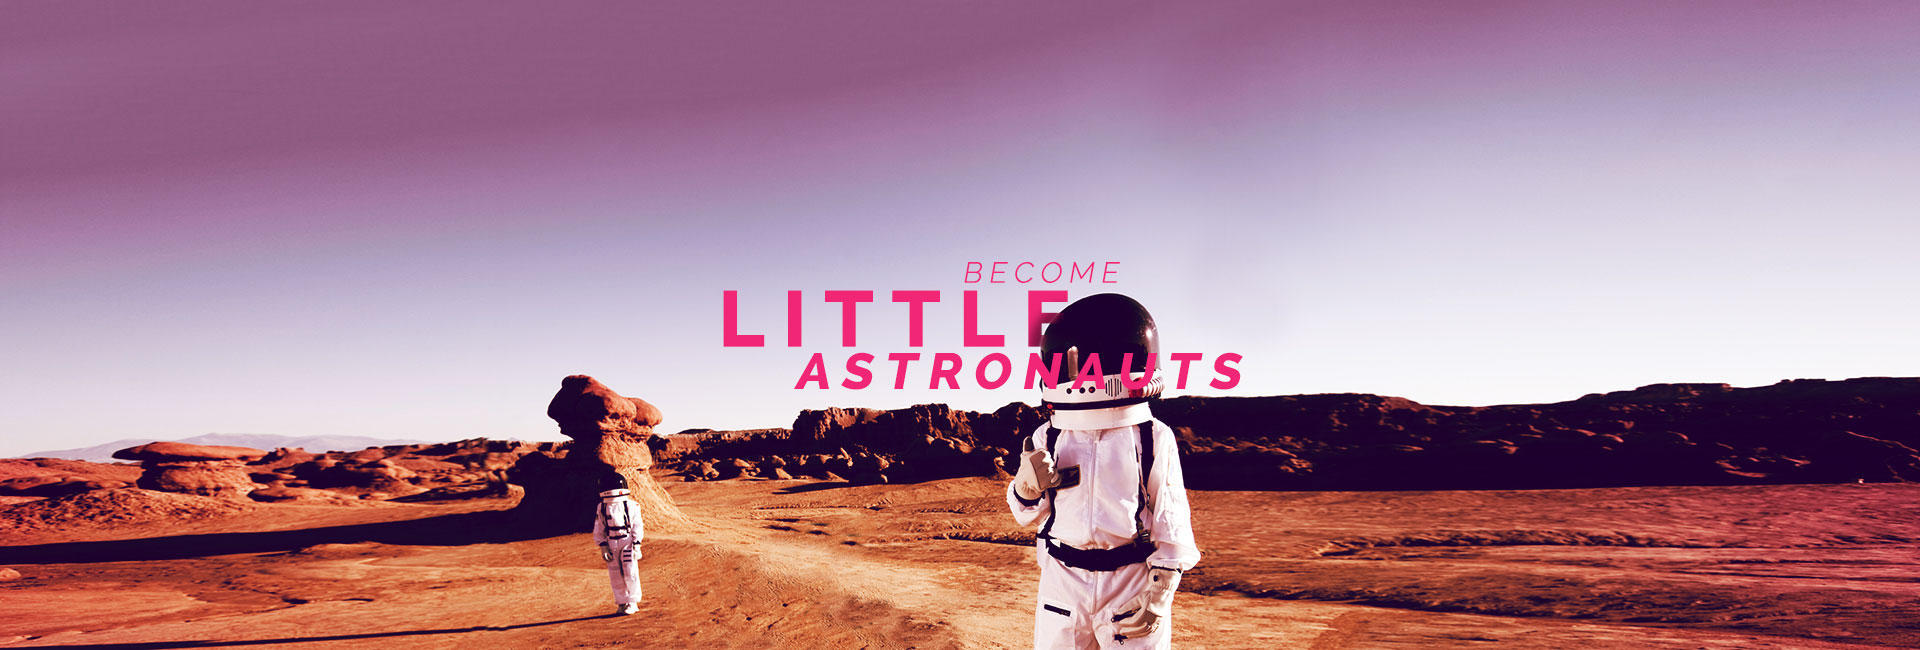 Become little astronauts